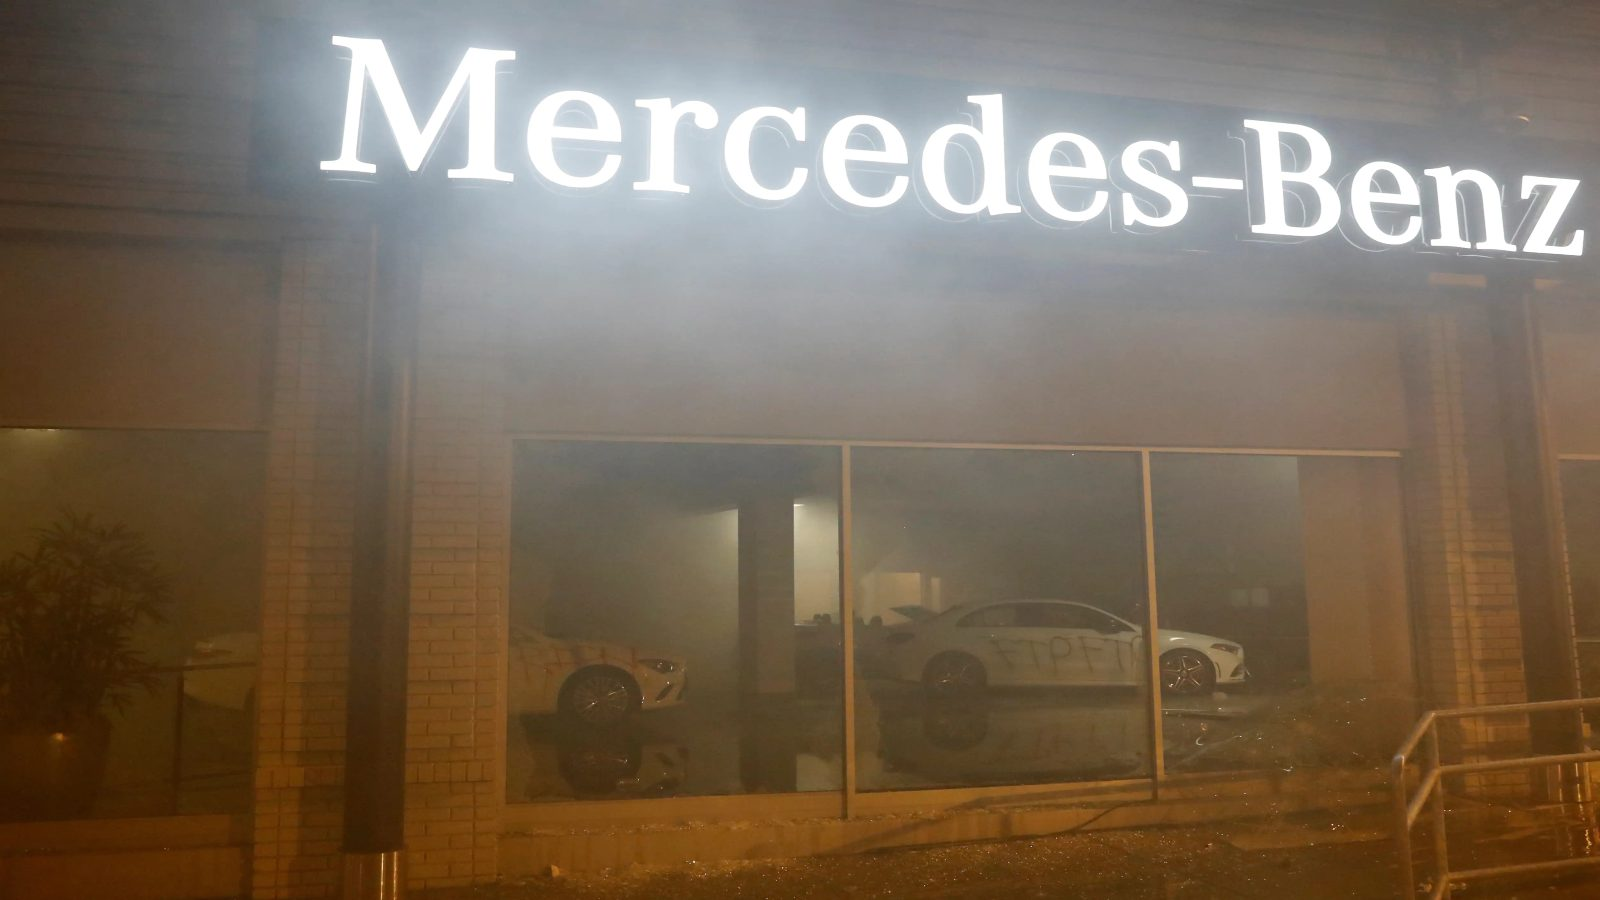 Rioters Vandalise A Mercedes-Benz Showroom In Oakland, USA | Motoroids